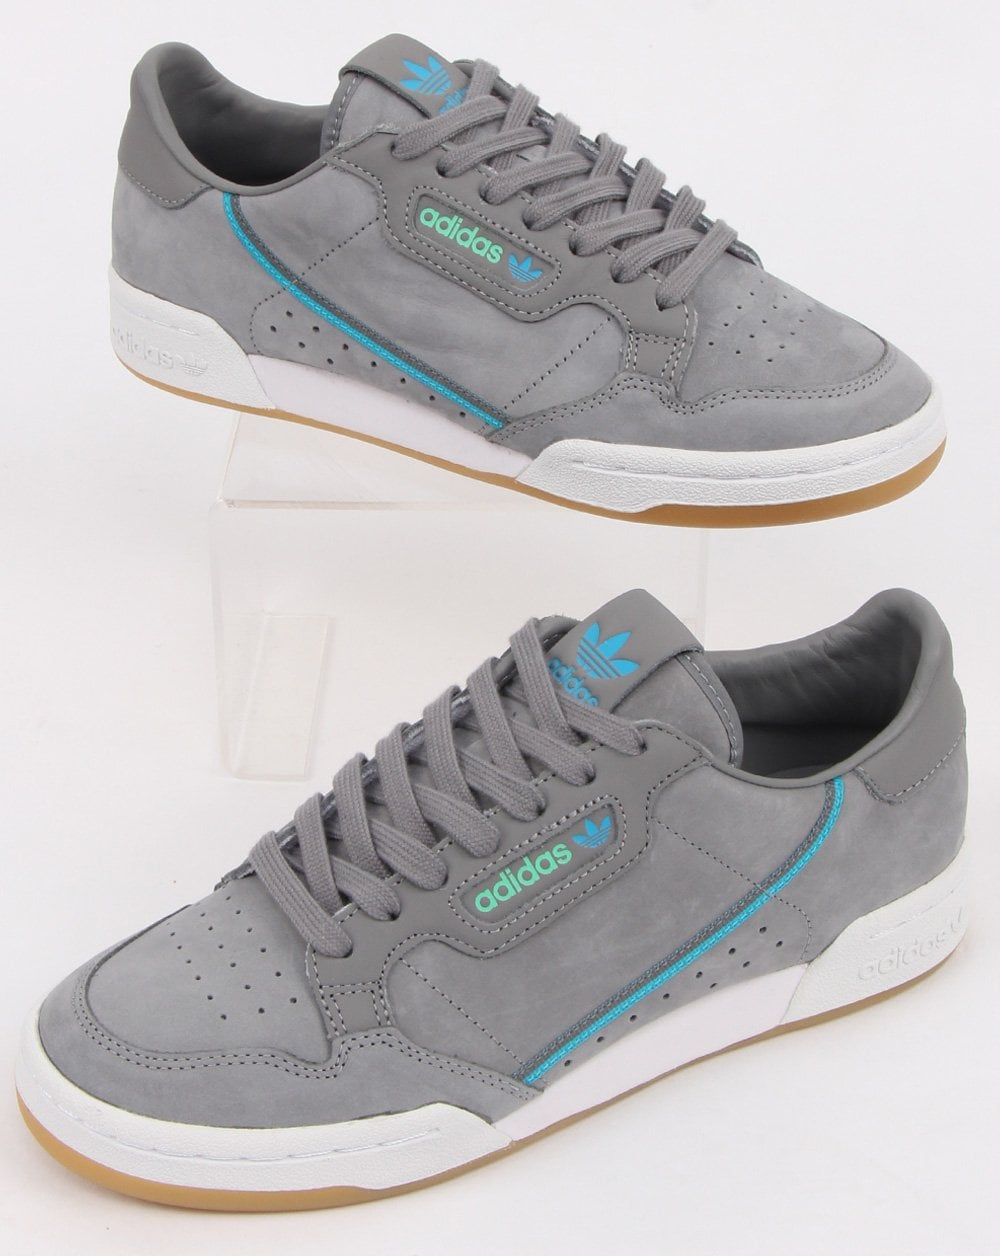 Adidas Continental 80 x TFL Trainers Greybluegreen